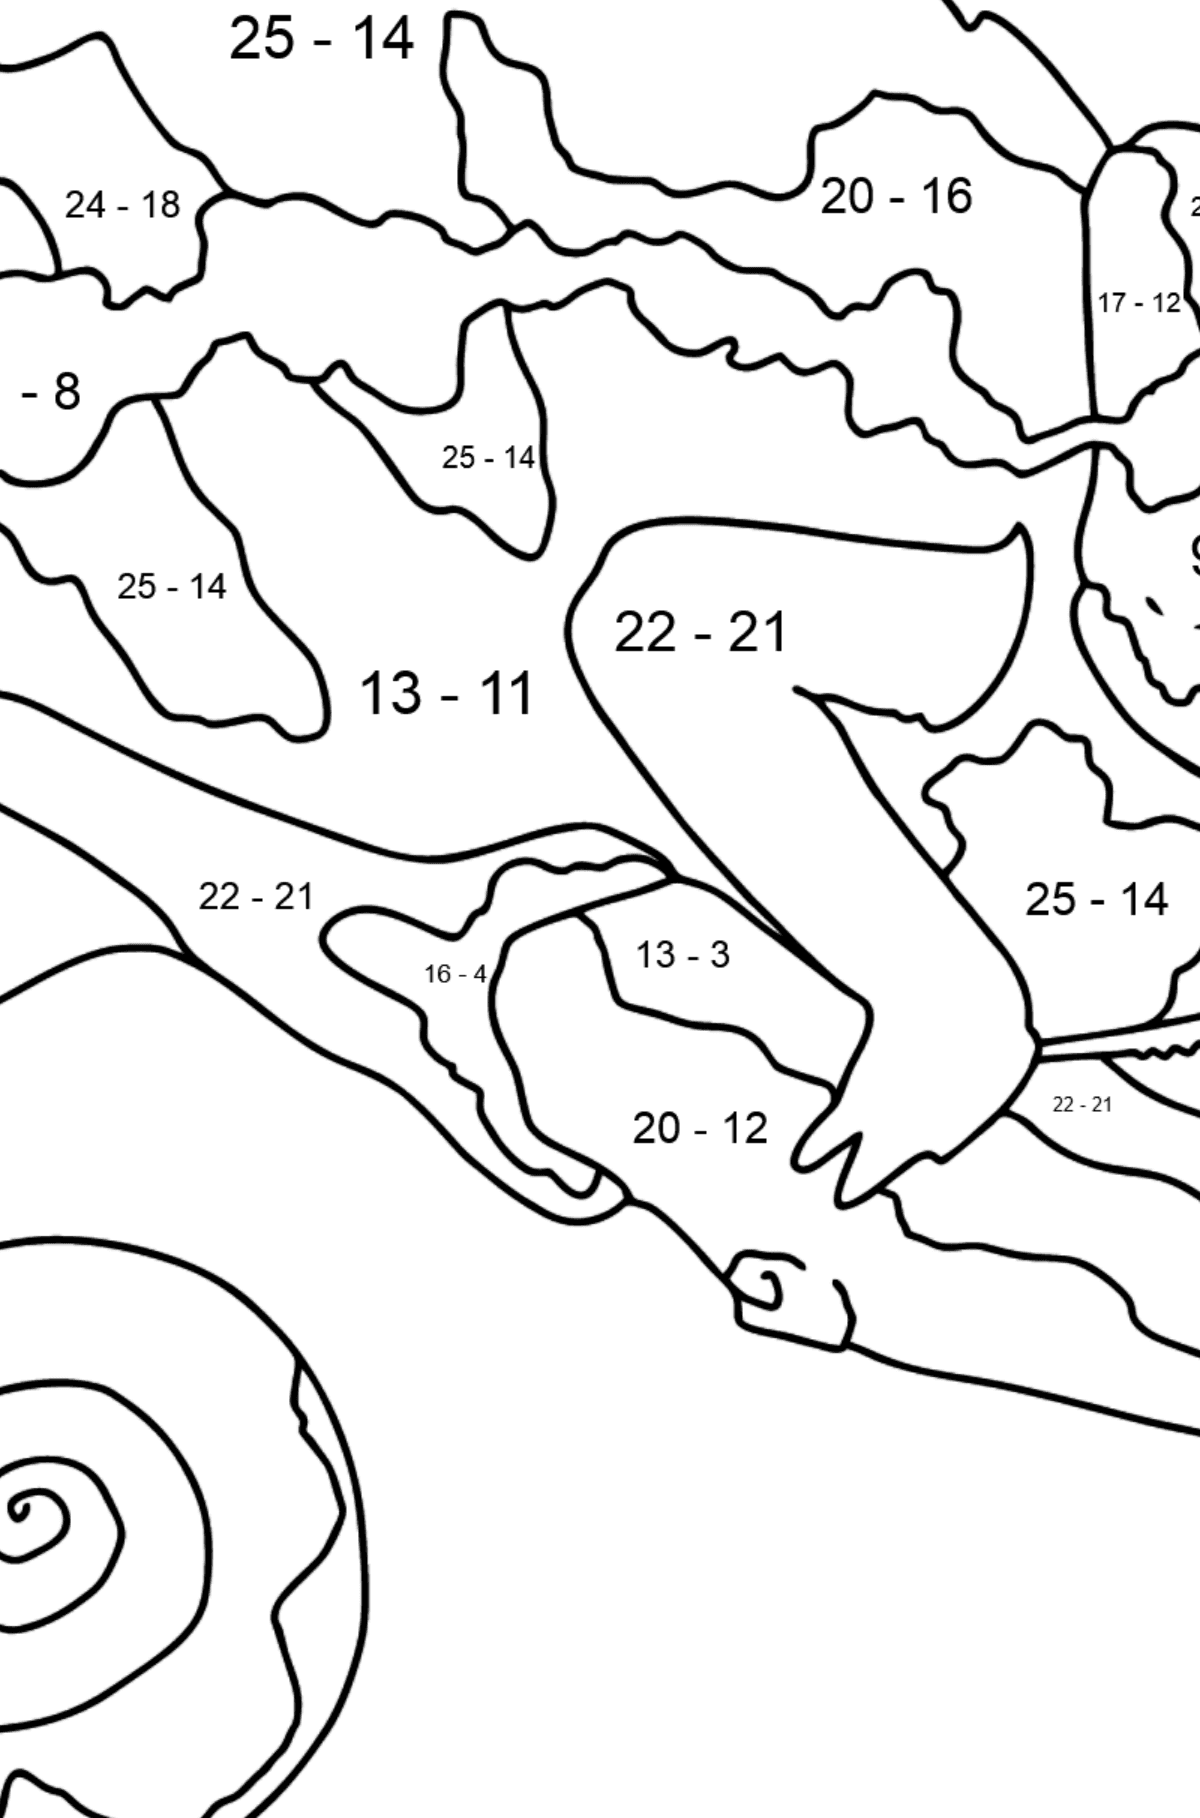 Coloring Page - A Multicolored Chameleon - Math Coloring - Subtraction for Kids